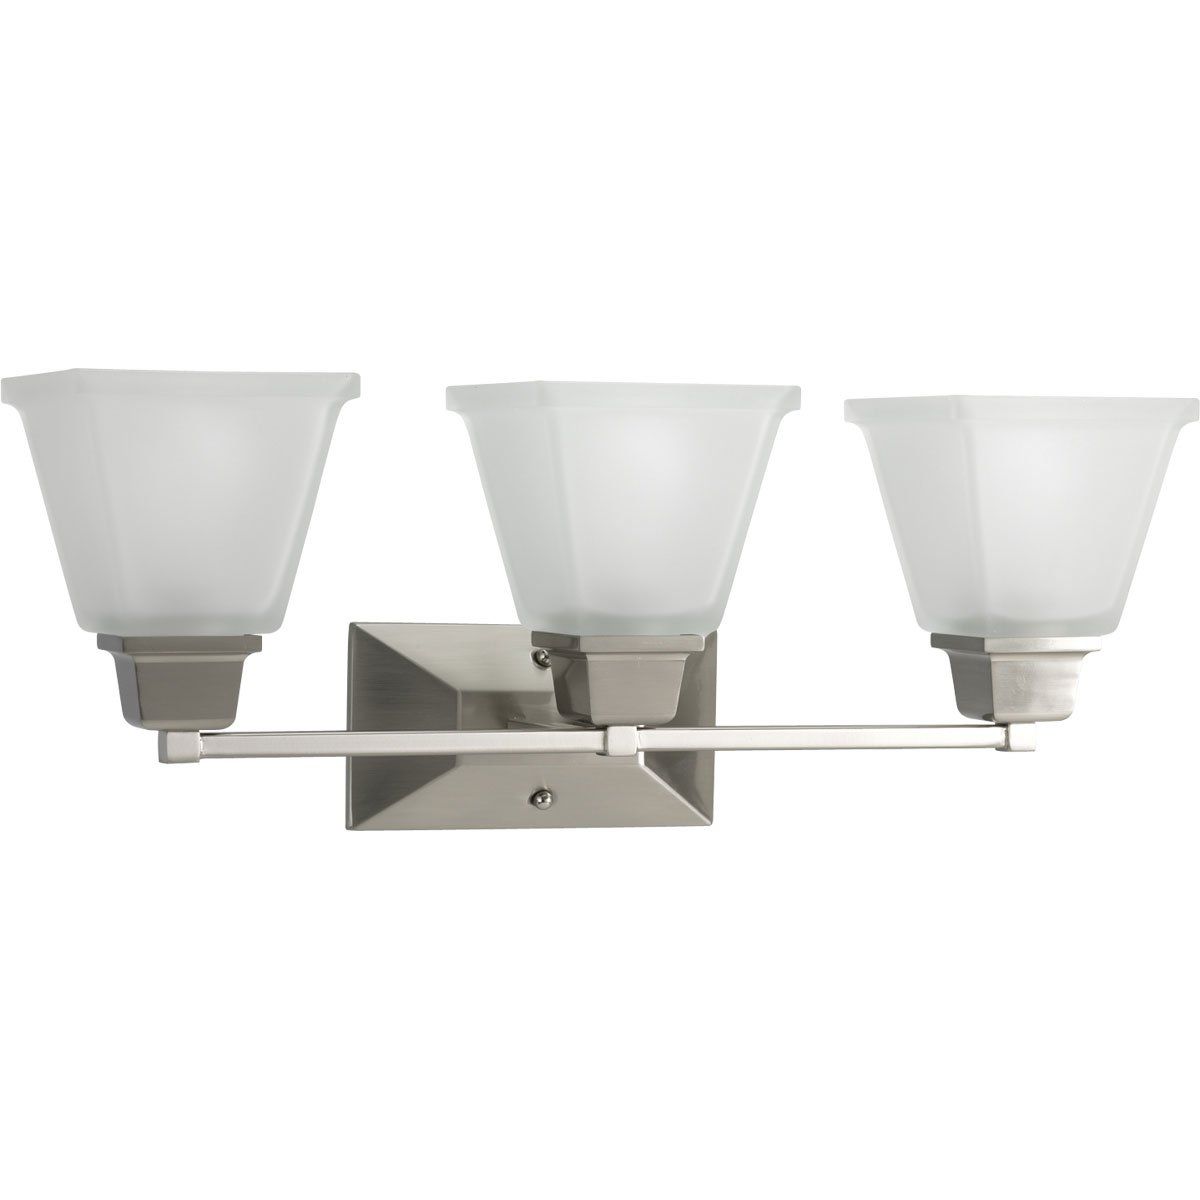 Progress lighting p2743 09 3 light bath fixture with square etched glass and can mount up or down brushed nickel vanity lighting fixtures amazon com